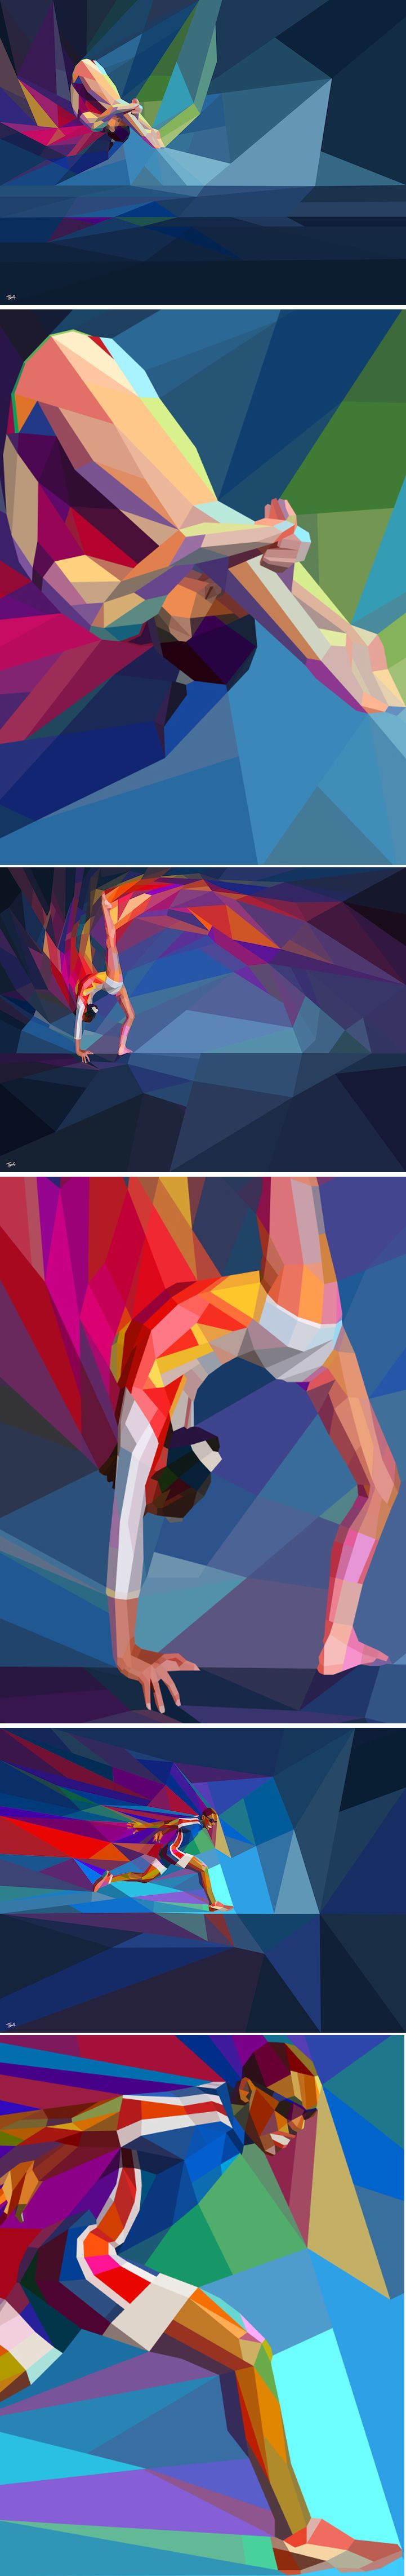 nike air jordan 13 release date Colorful Geometric Illustrations of London 2012 Olympics